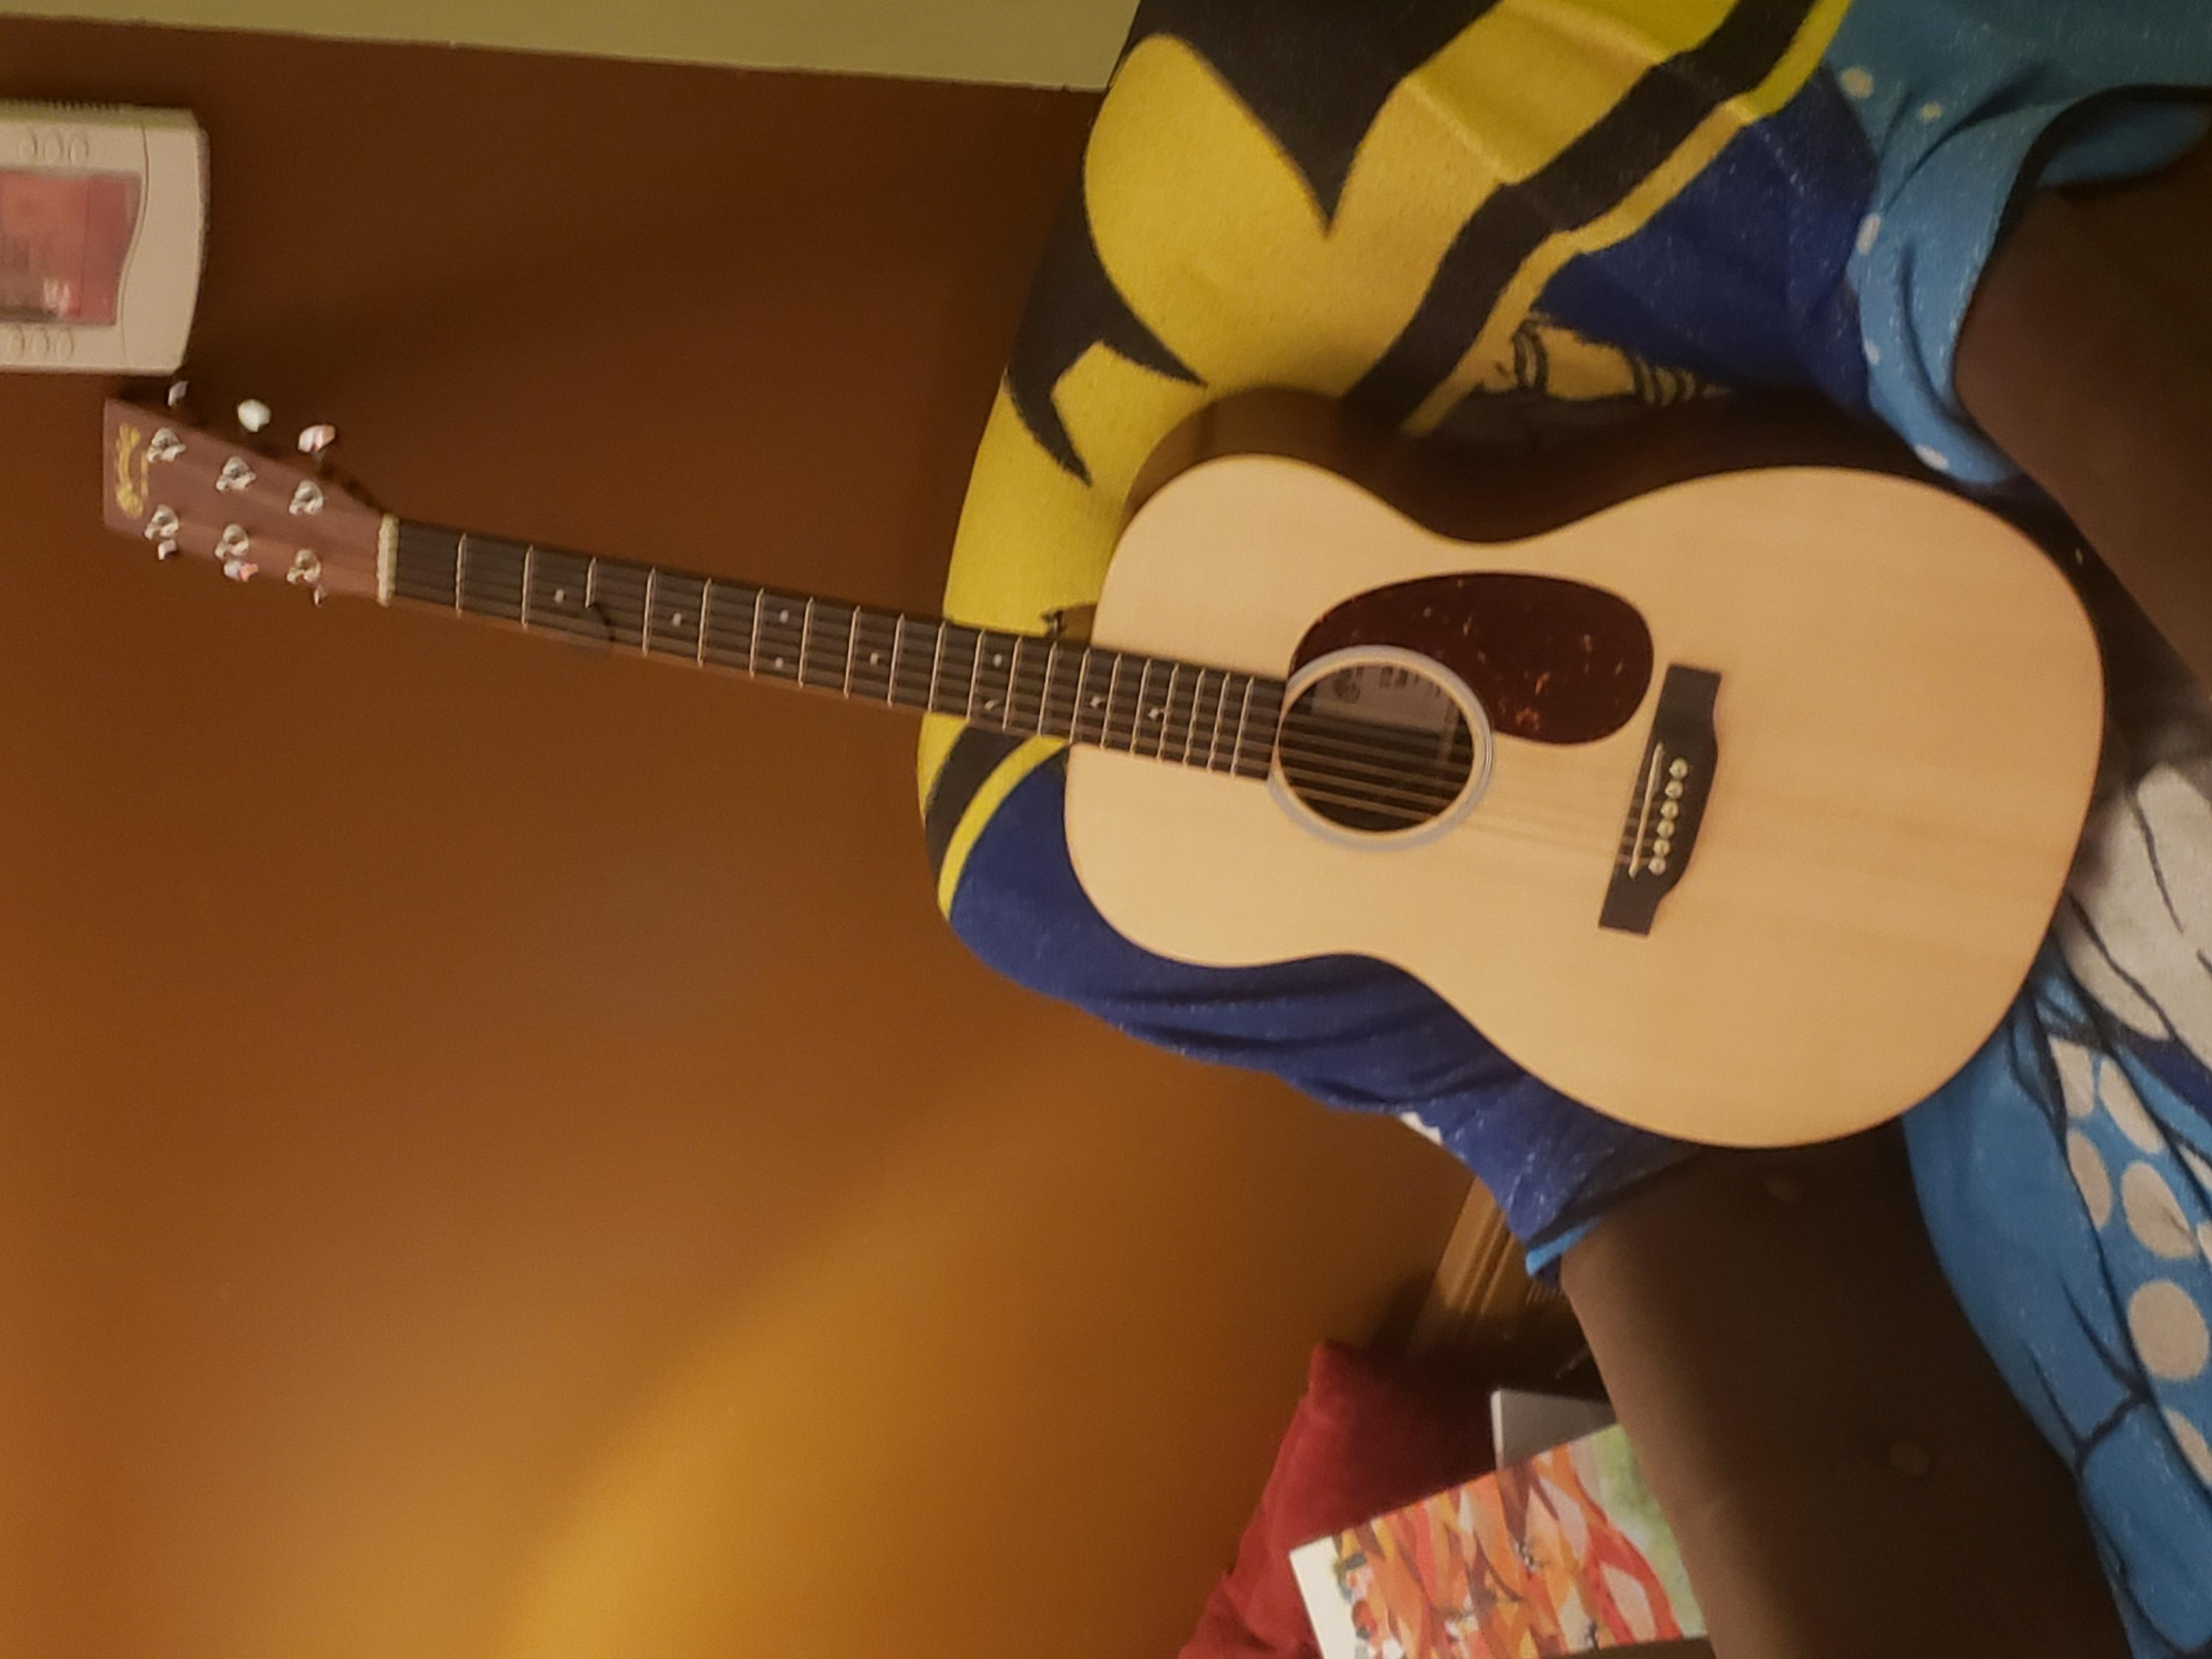 Retail therapy...bought a Martin 000-20210124_190056-jpg